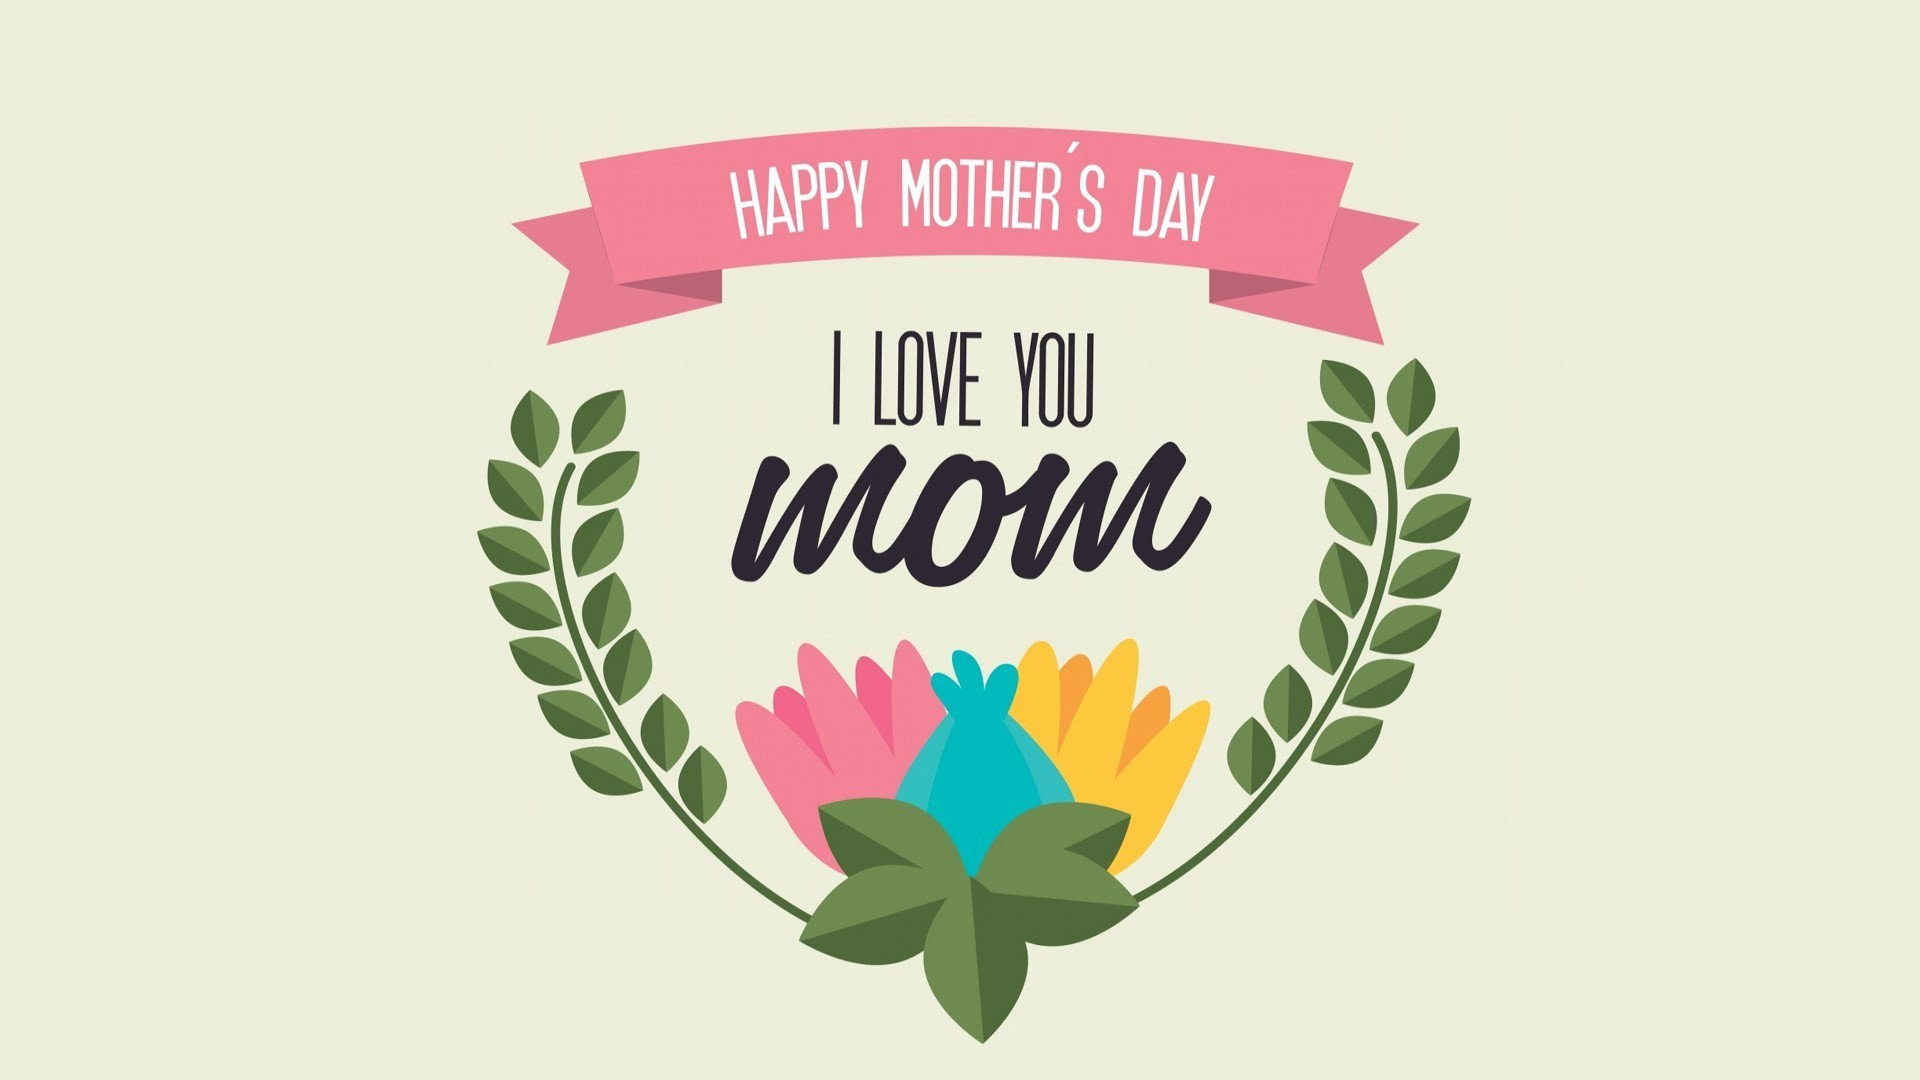 I Love you Mom Happy Mothers Day Wallpaper HD